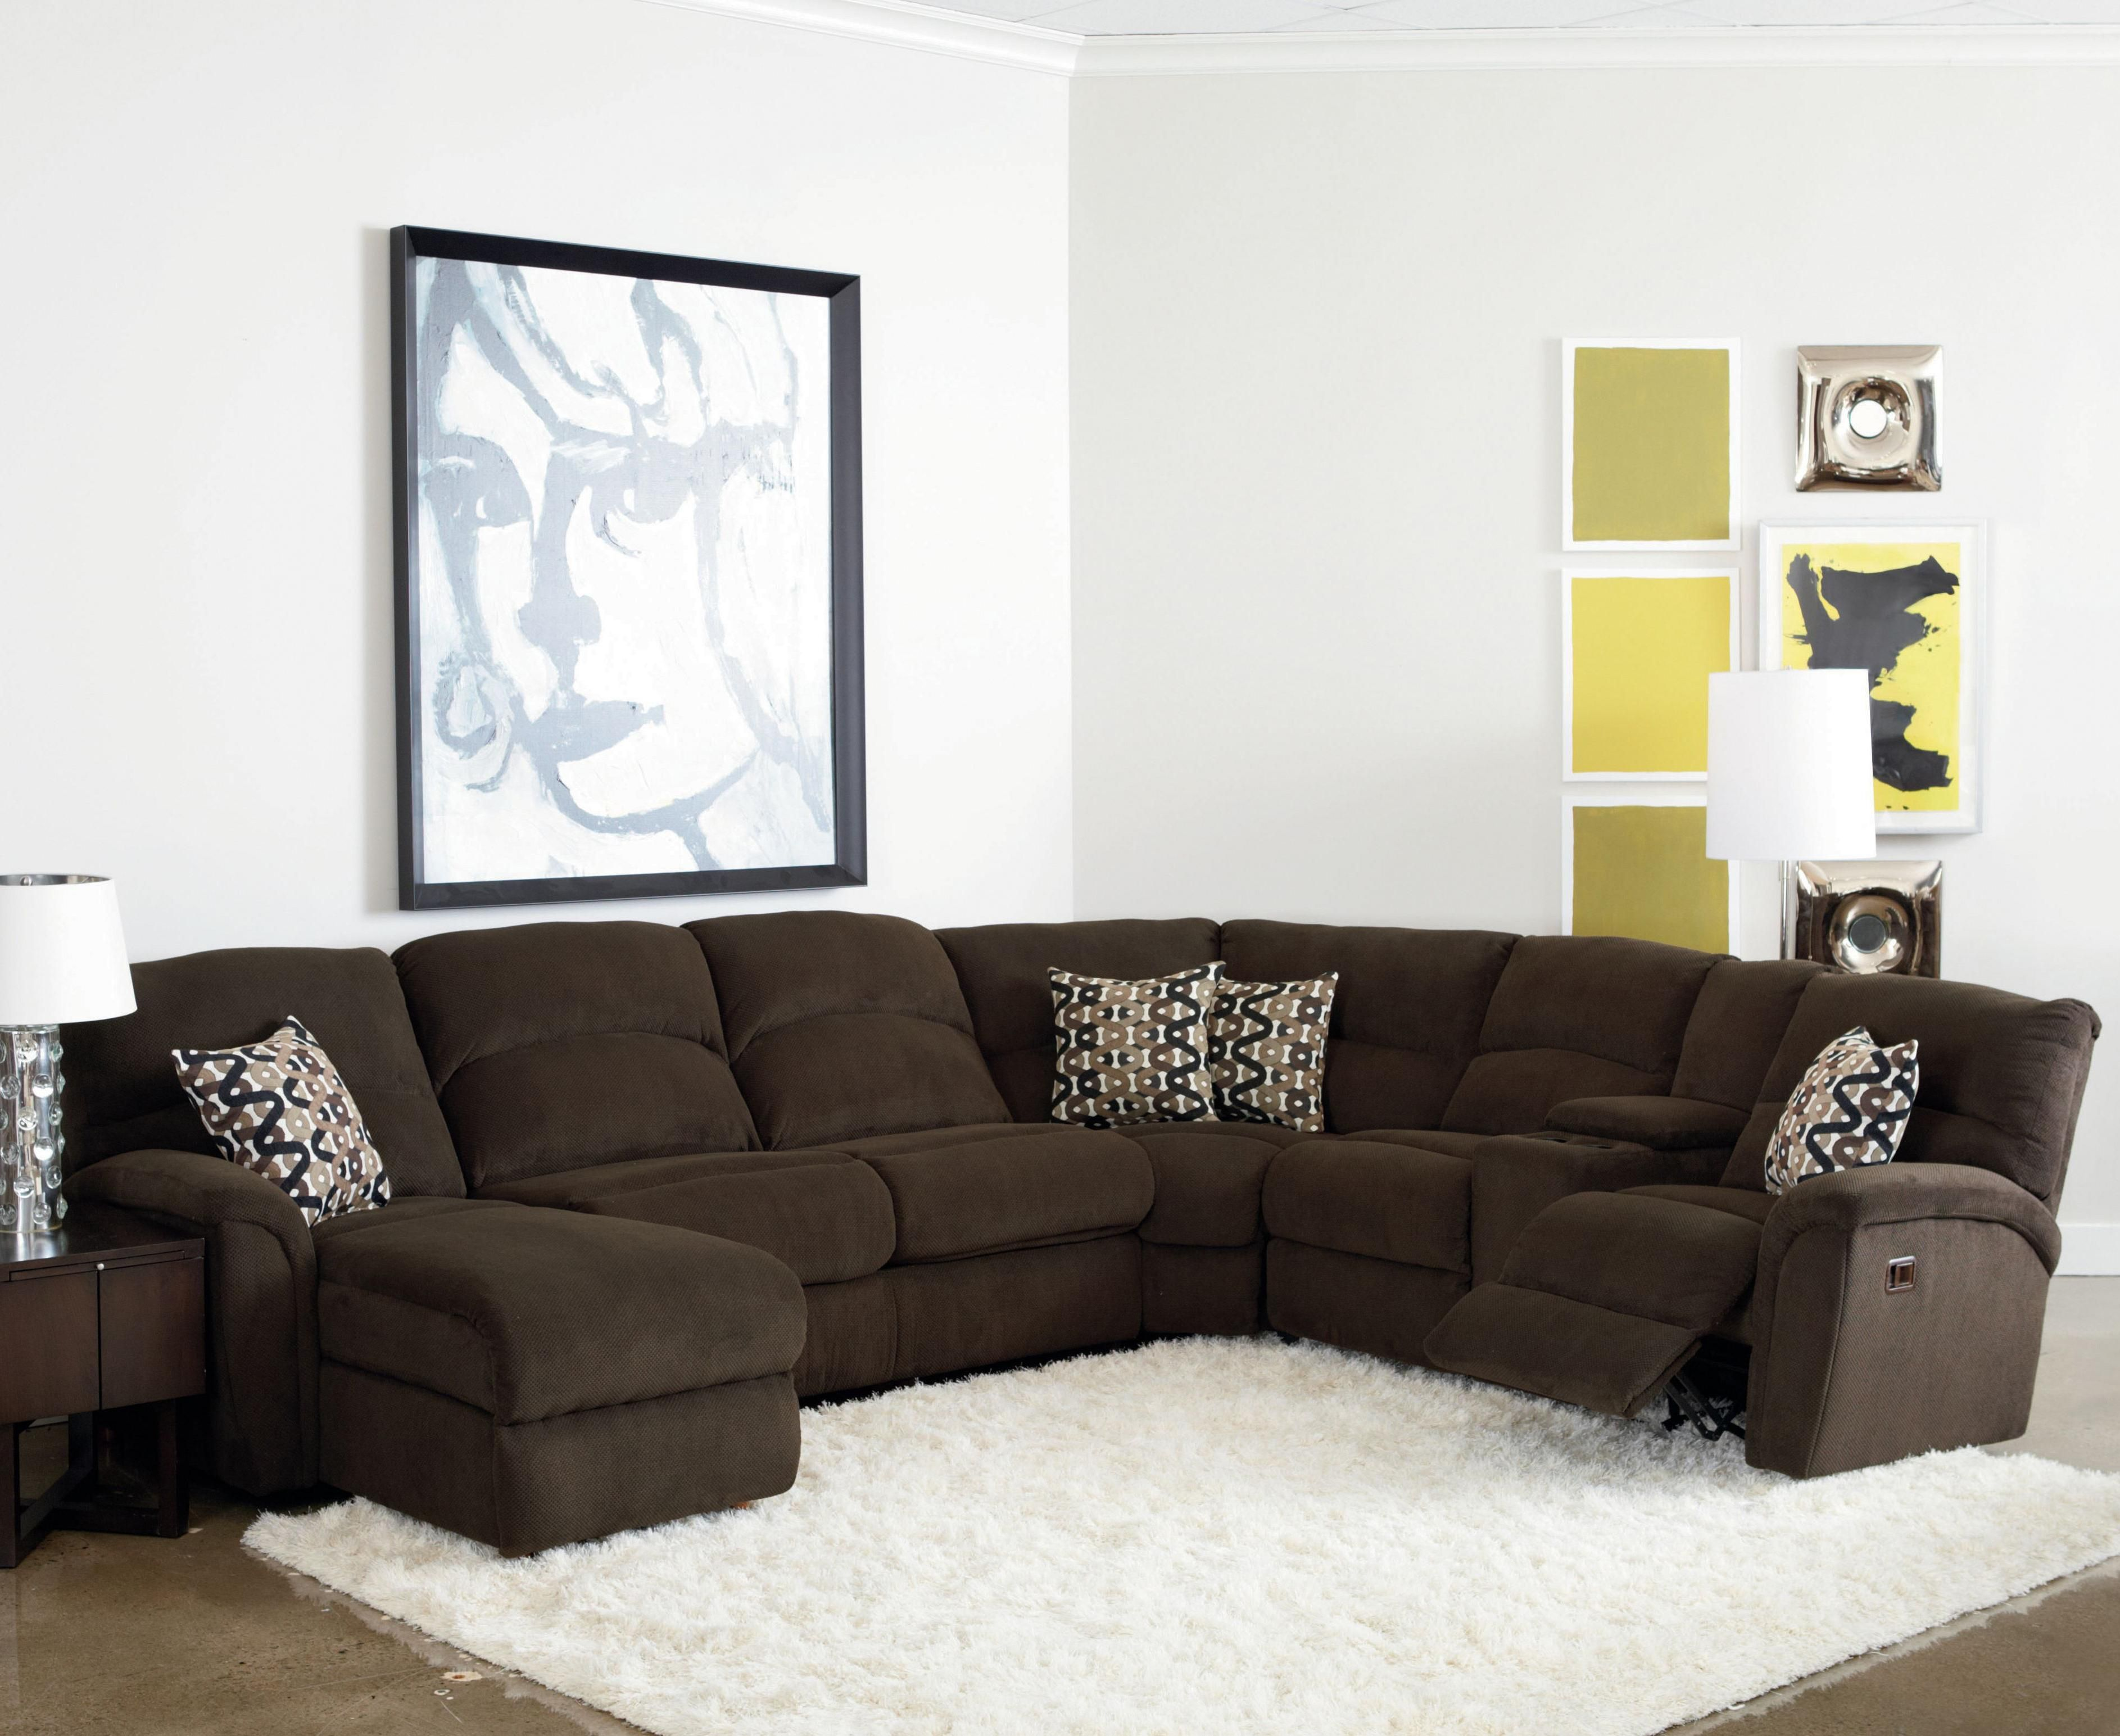 Howell Sofa Leather Cleaning Kit Argos Lane Grand Torino Casual Four Piece Power Sectional W